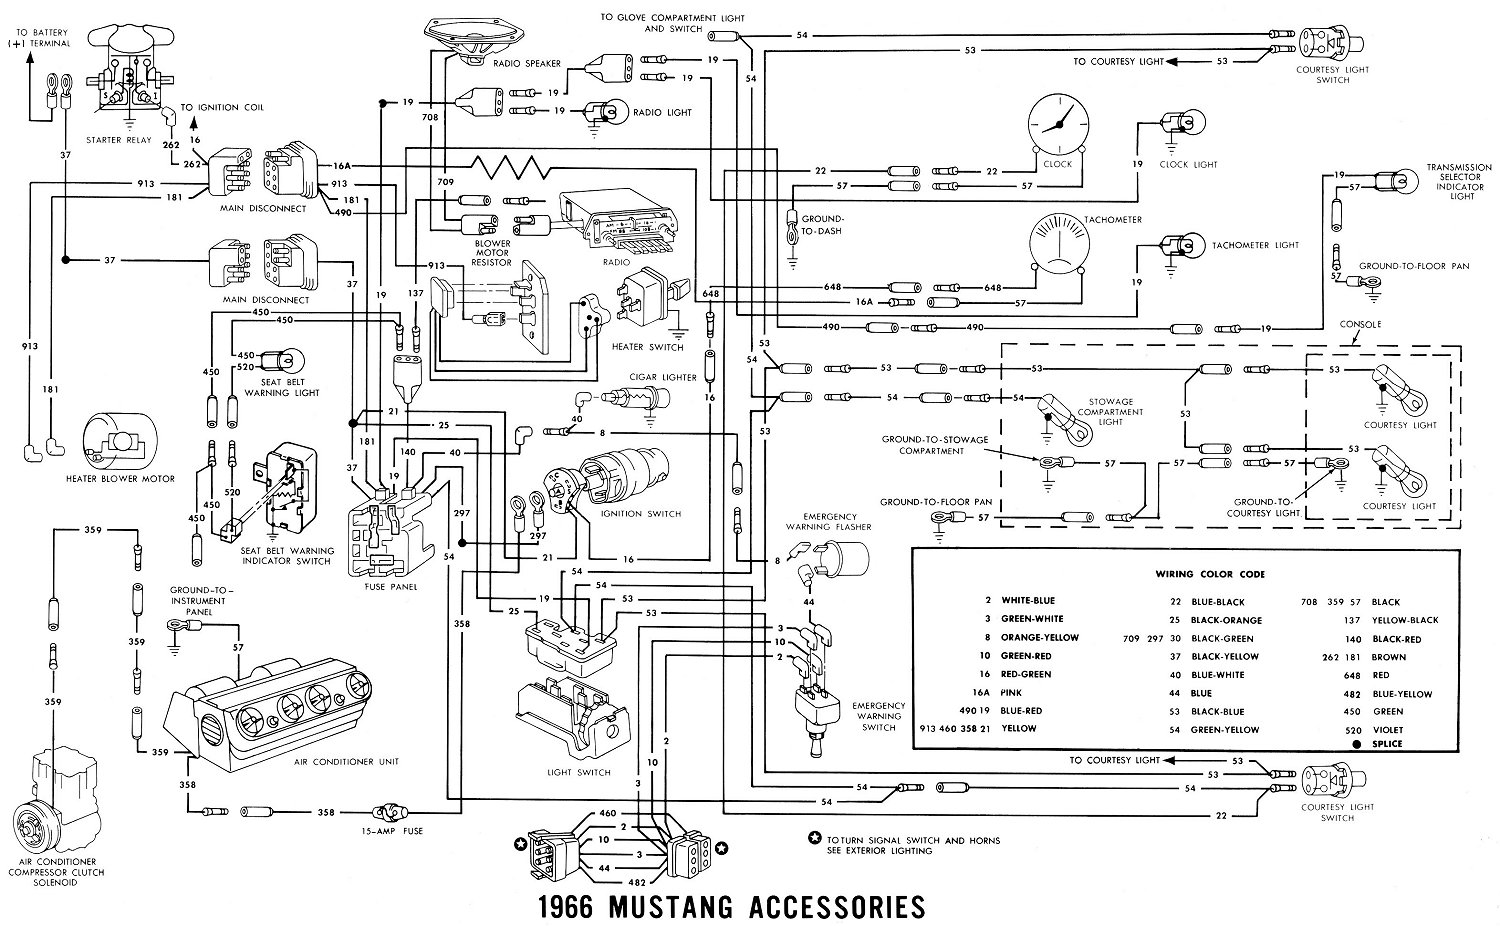 66acces1 1966 mustang wiring diagrams average joe restoration 2015 mustang radio wiring diagram at readyjetset.co